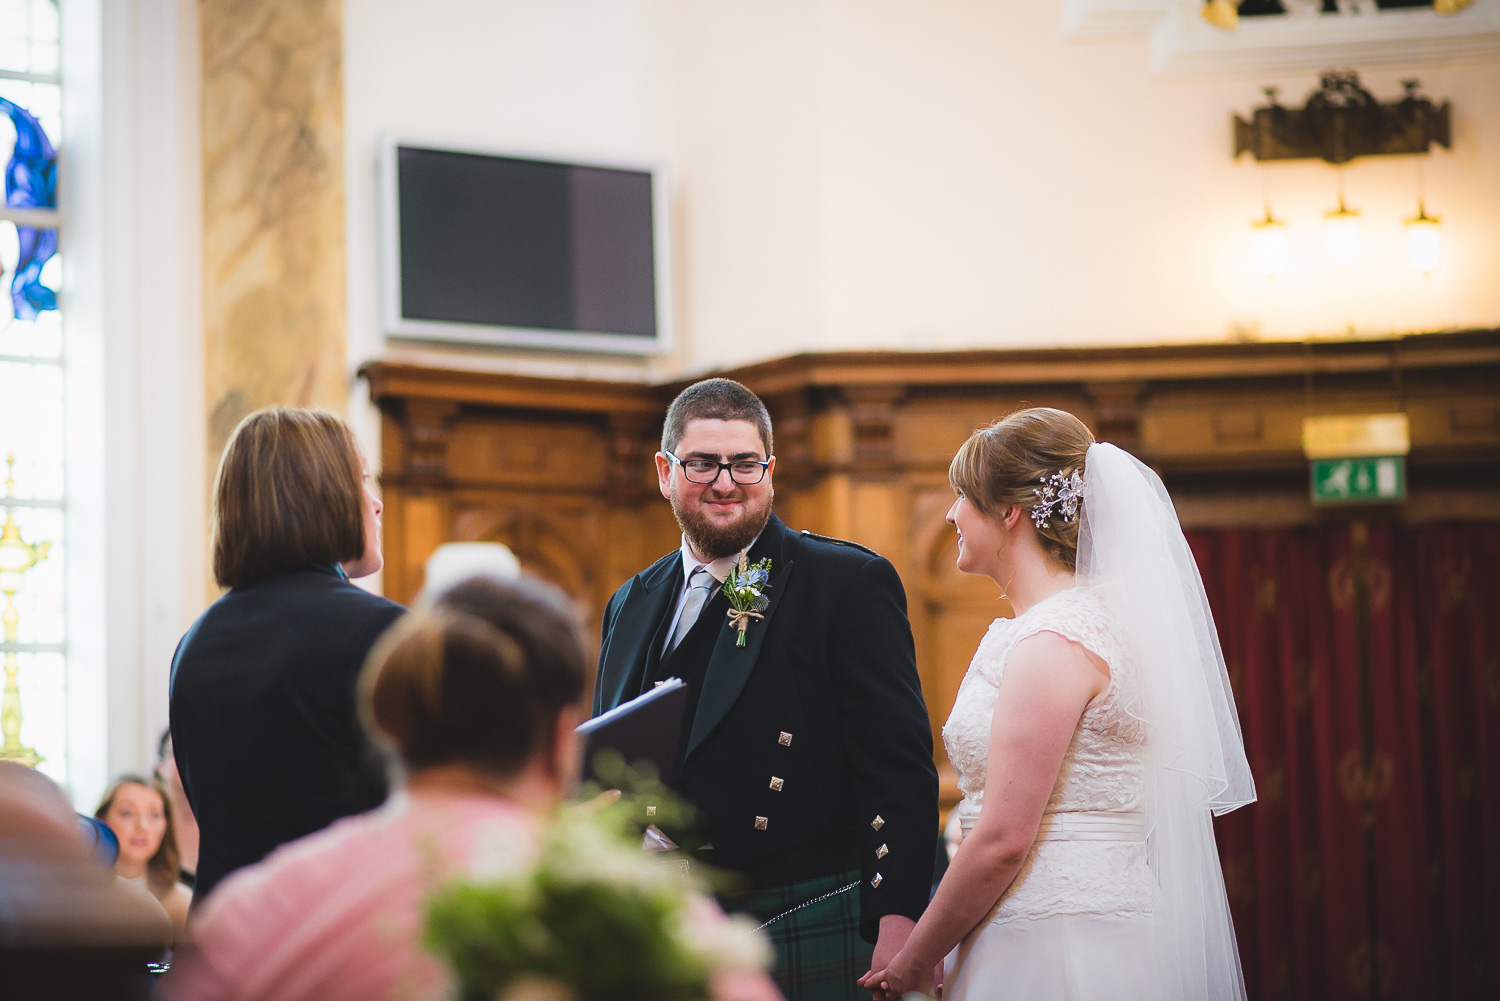 wedding-photographer-cardiff-university-8.jpg